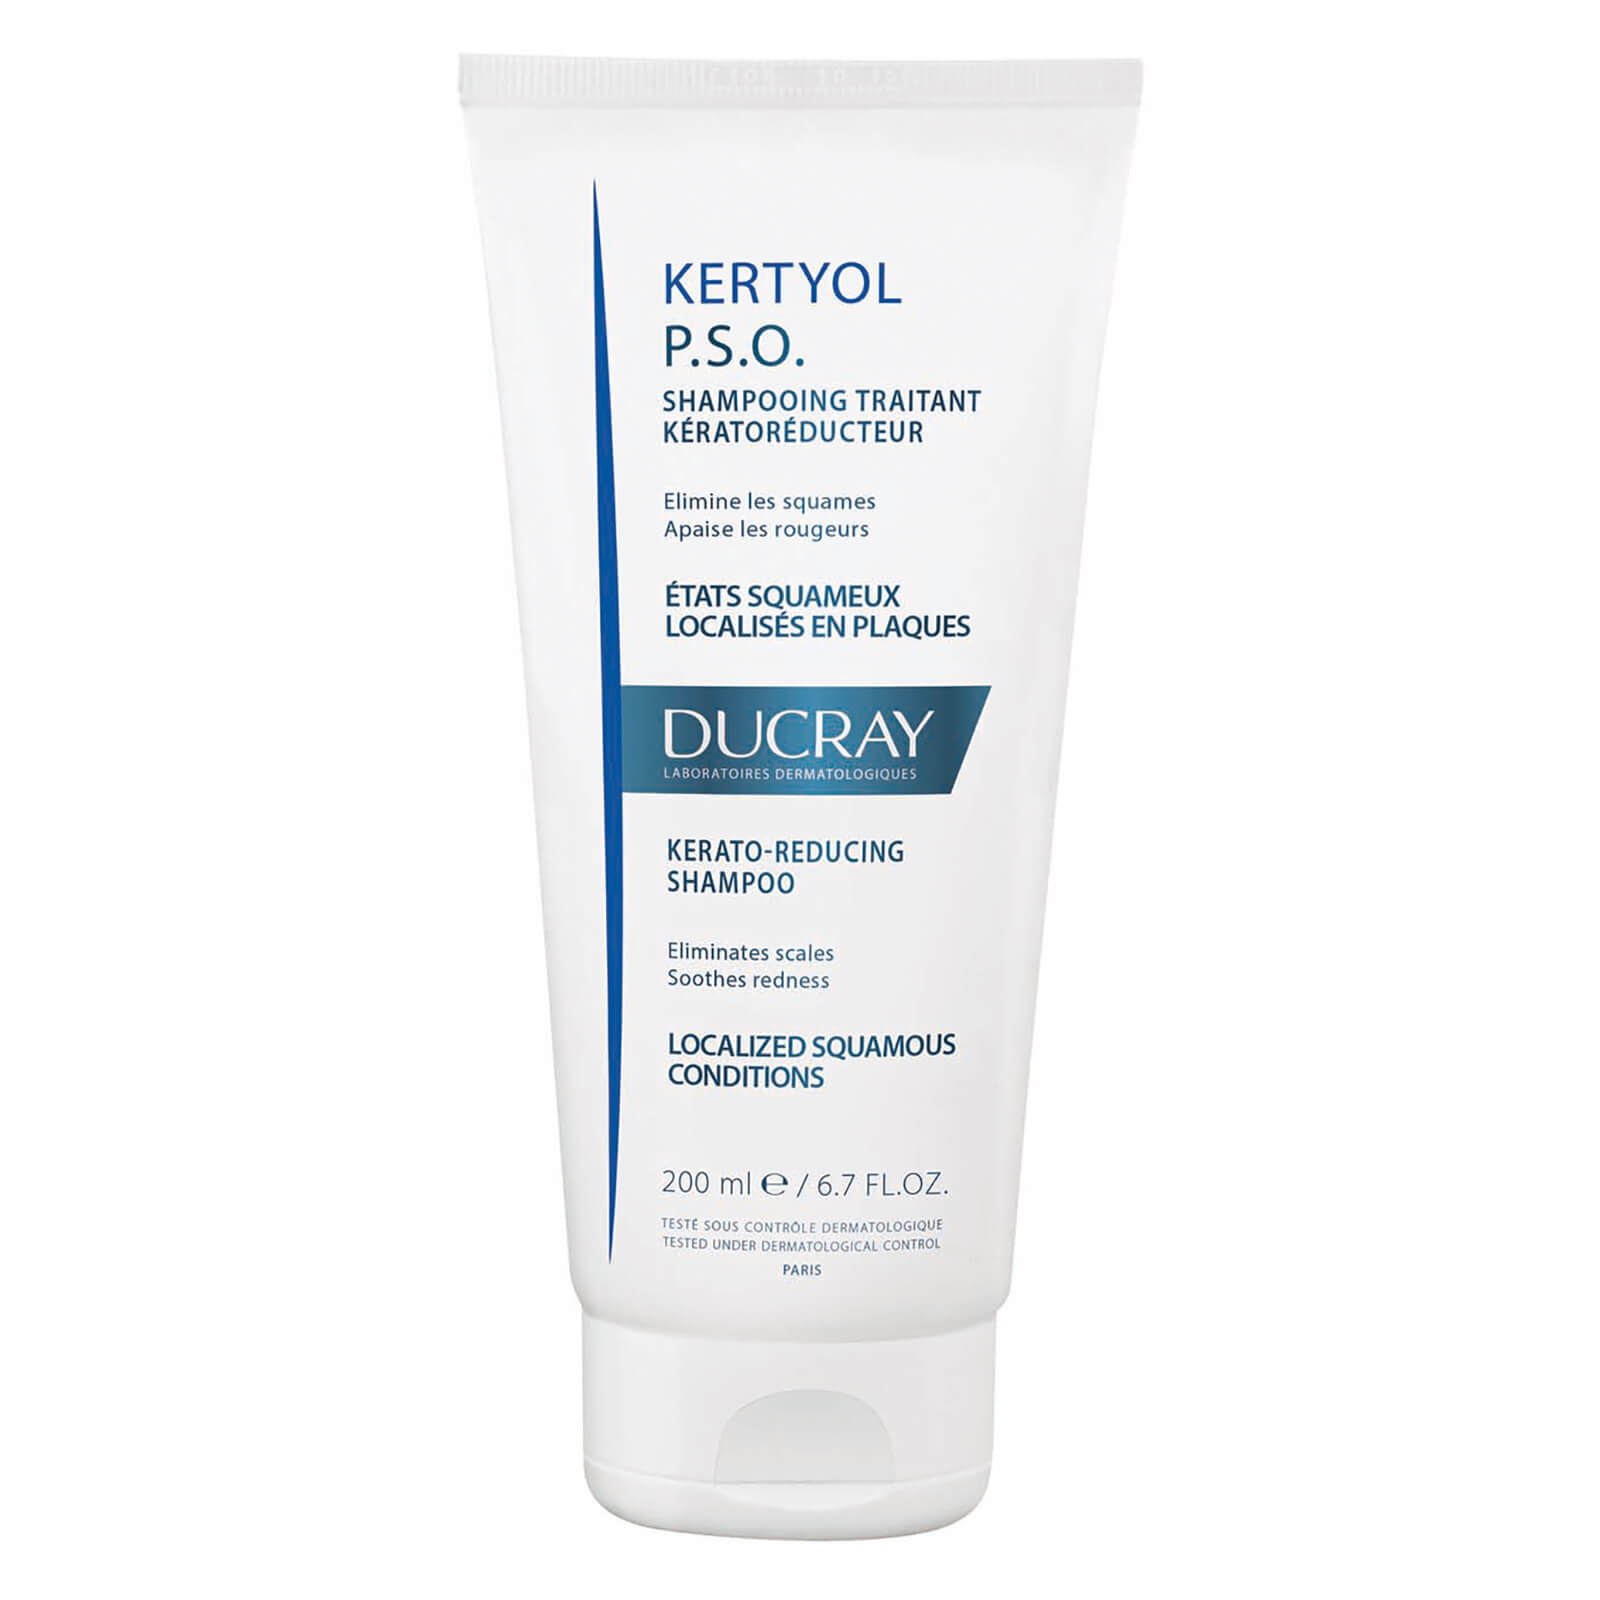 Ducray Kertyol P S O  Shampoo for Scalp Prone to Redness and